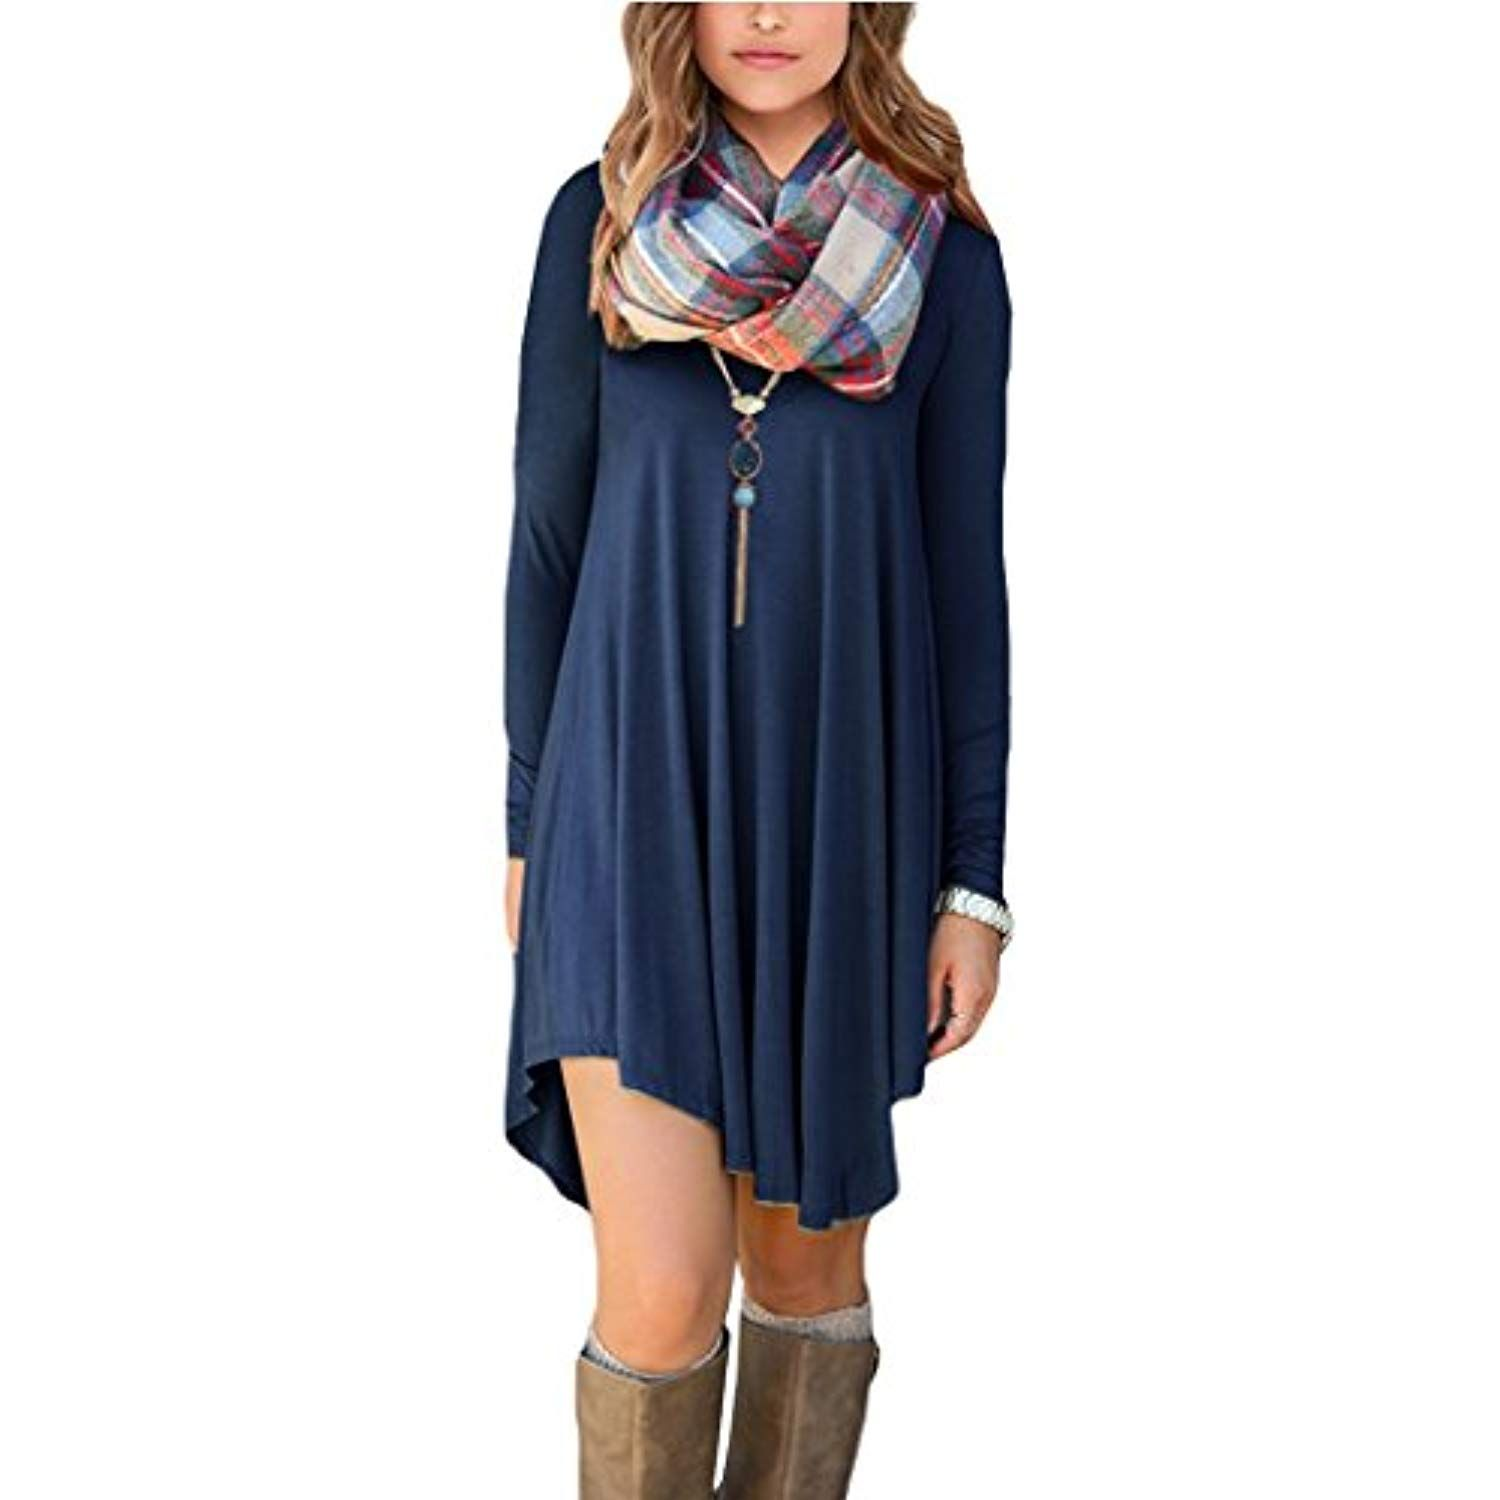 5ebc0163987 Women s Long Sleeve Casual Loose T-Shirt Dress    Want to know more ...